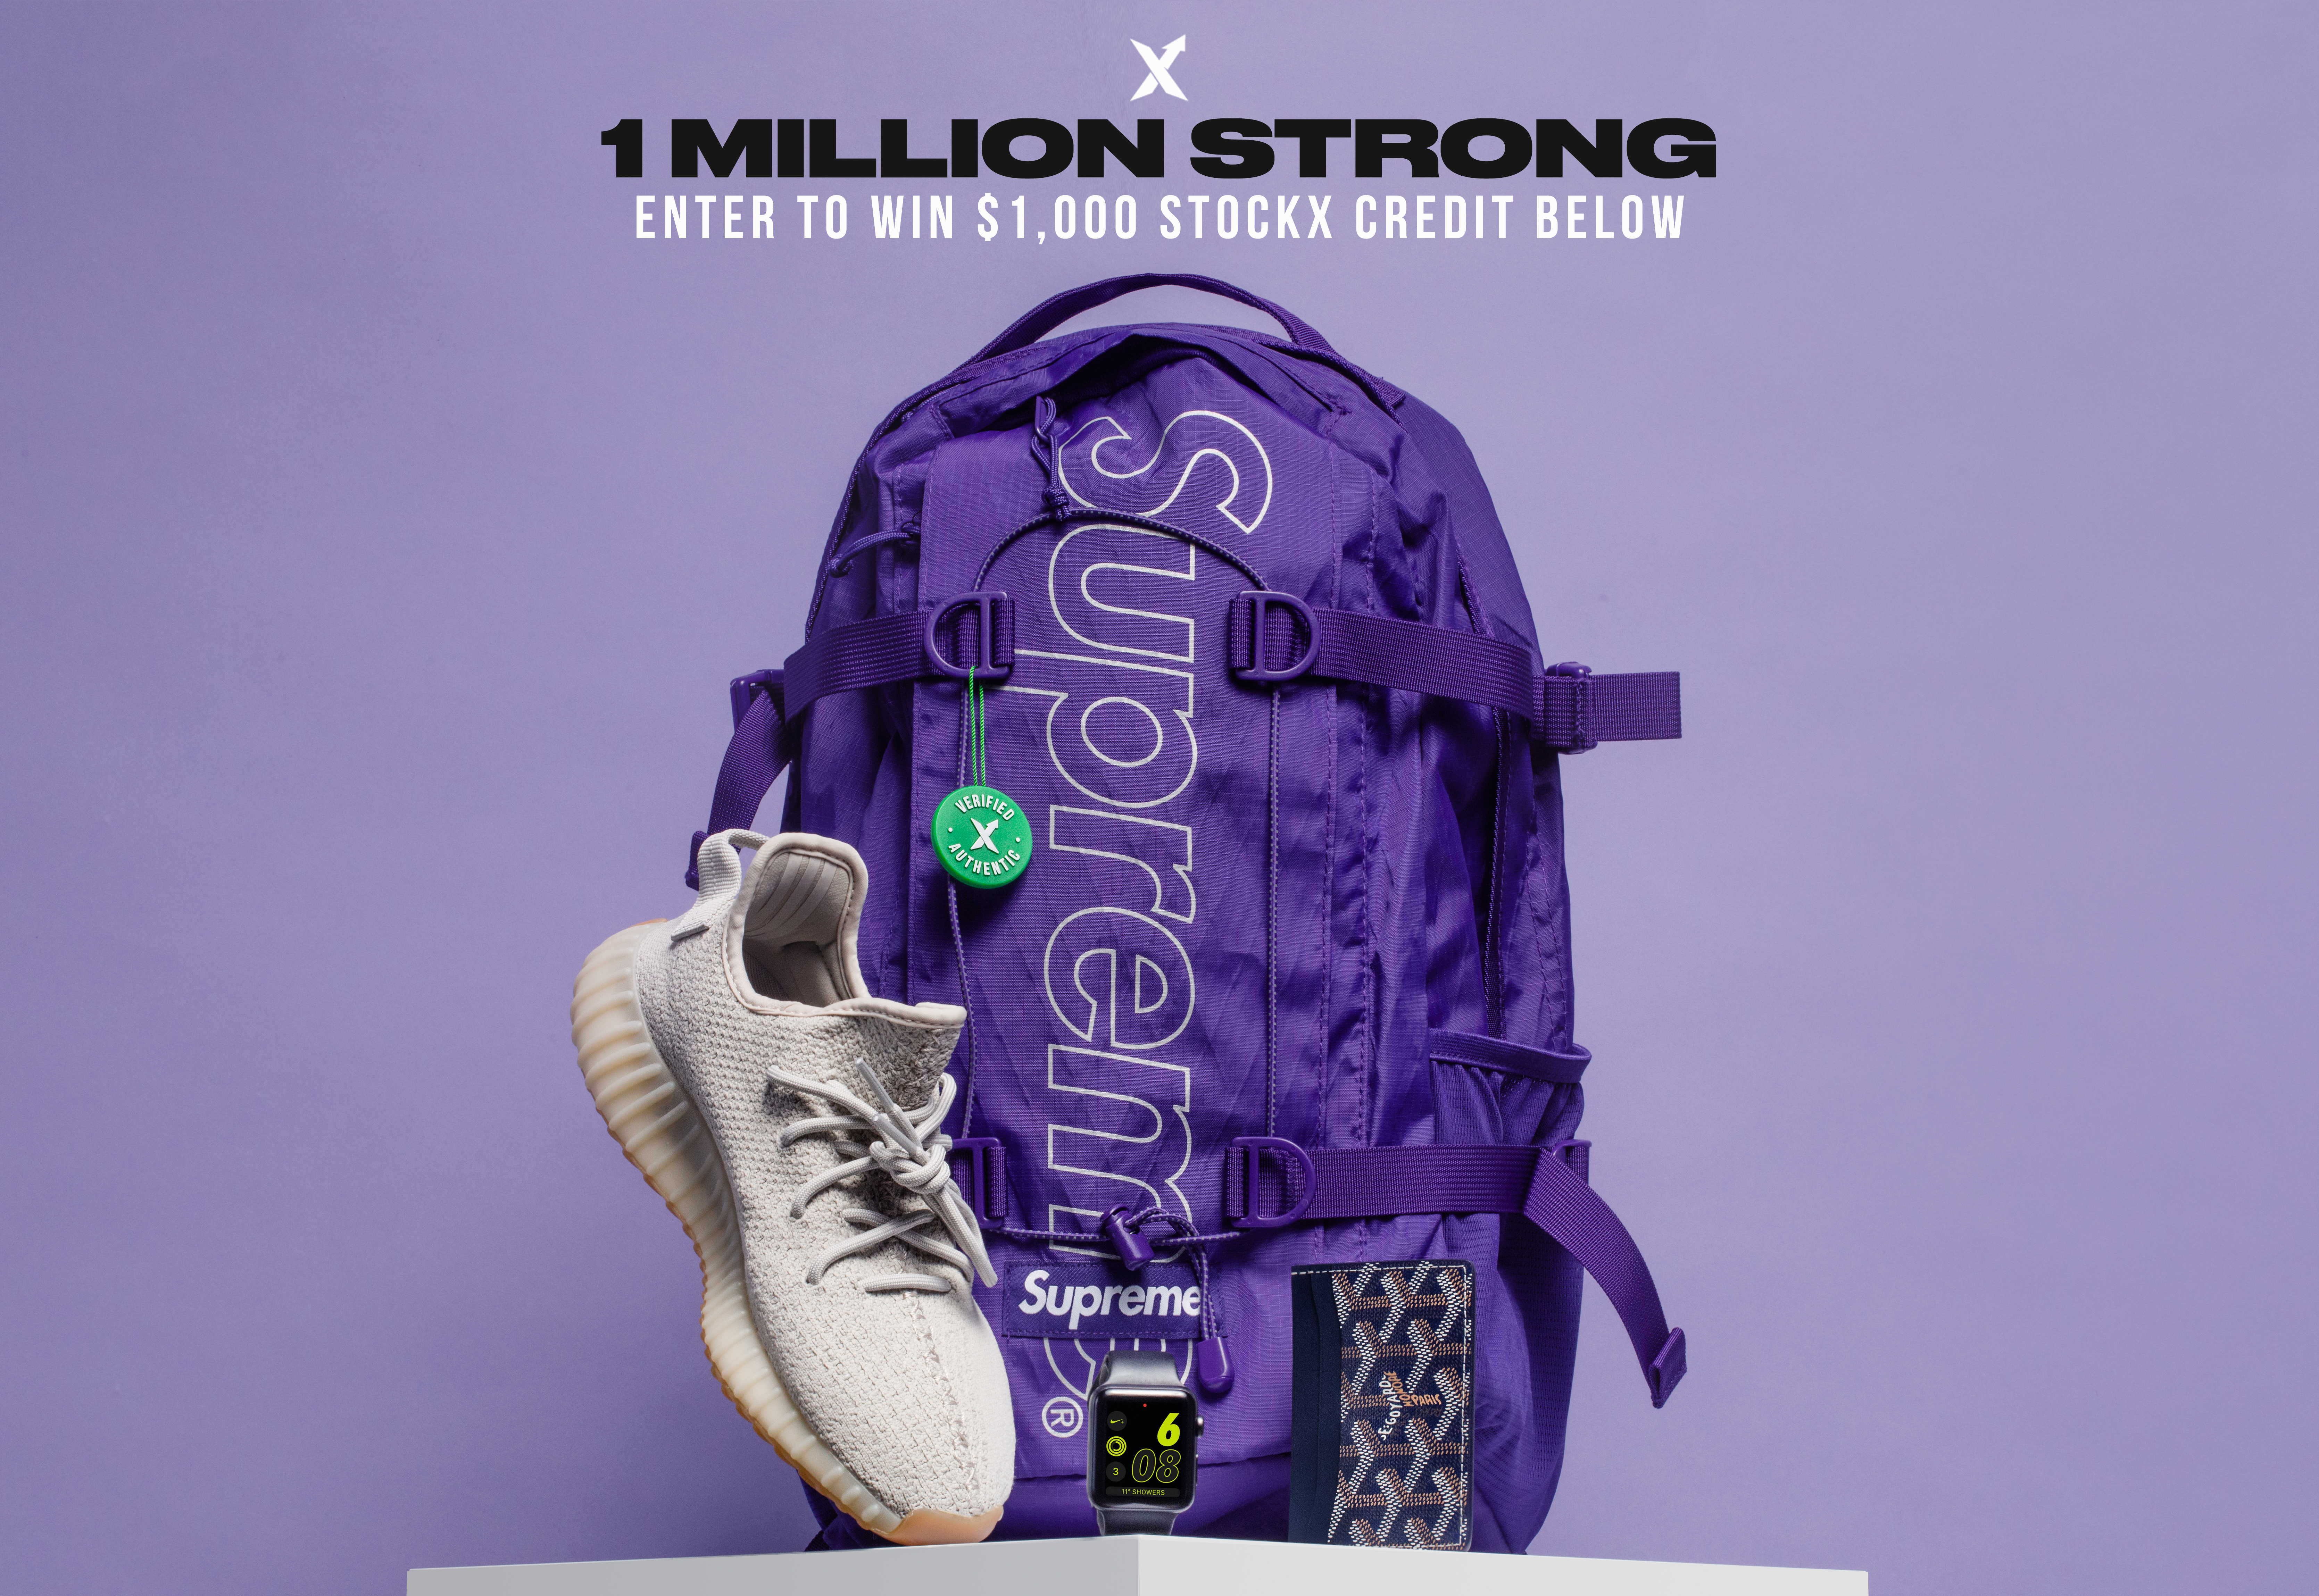 1532f97d 1 Million Strong: $1,000 StockX Credit Giveaway - StockX News